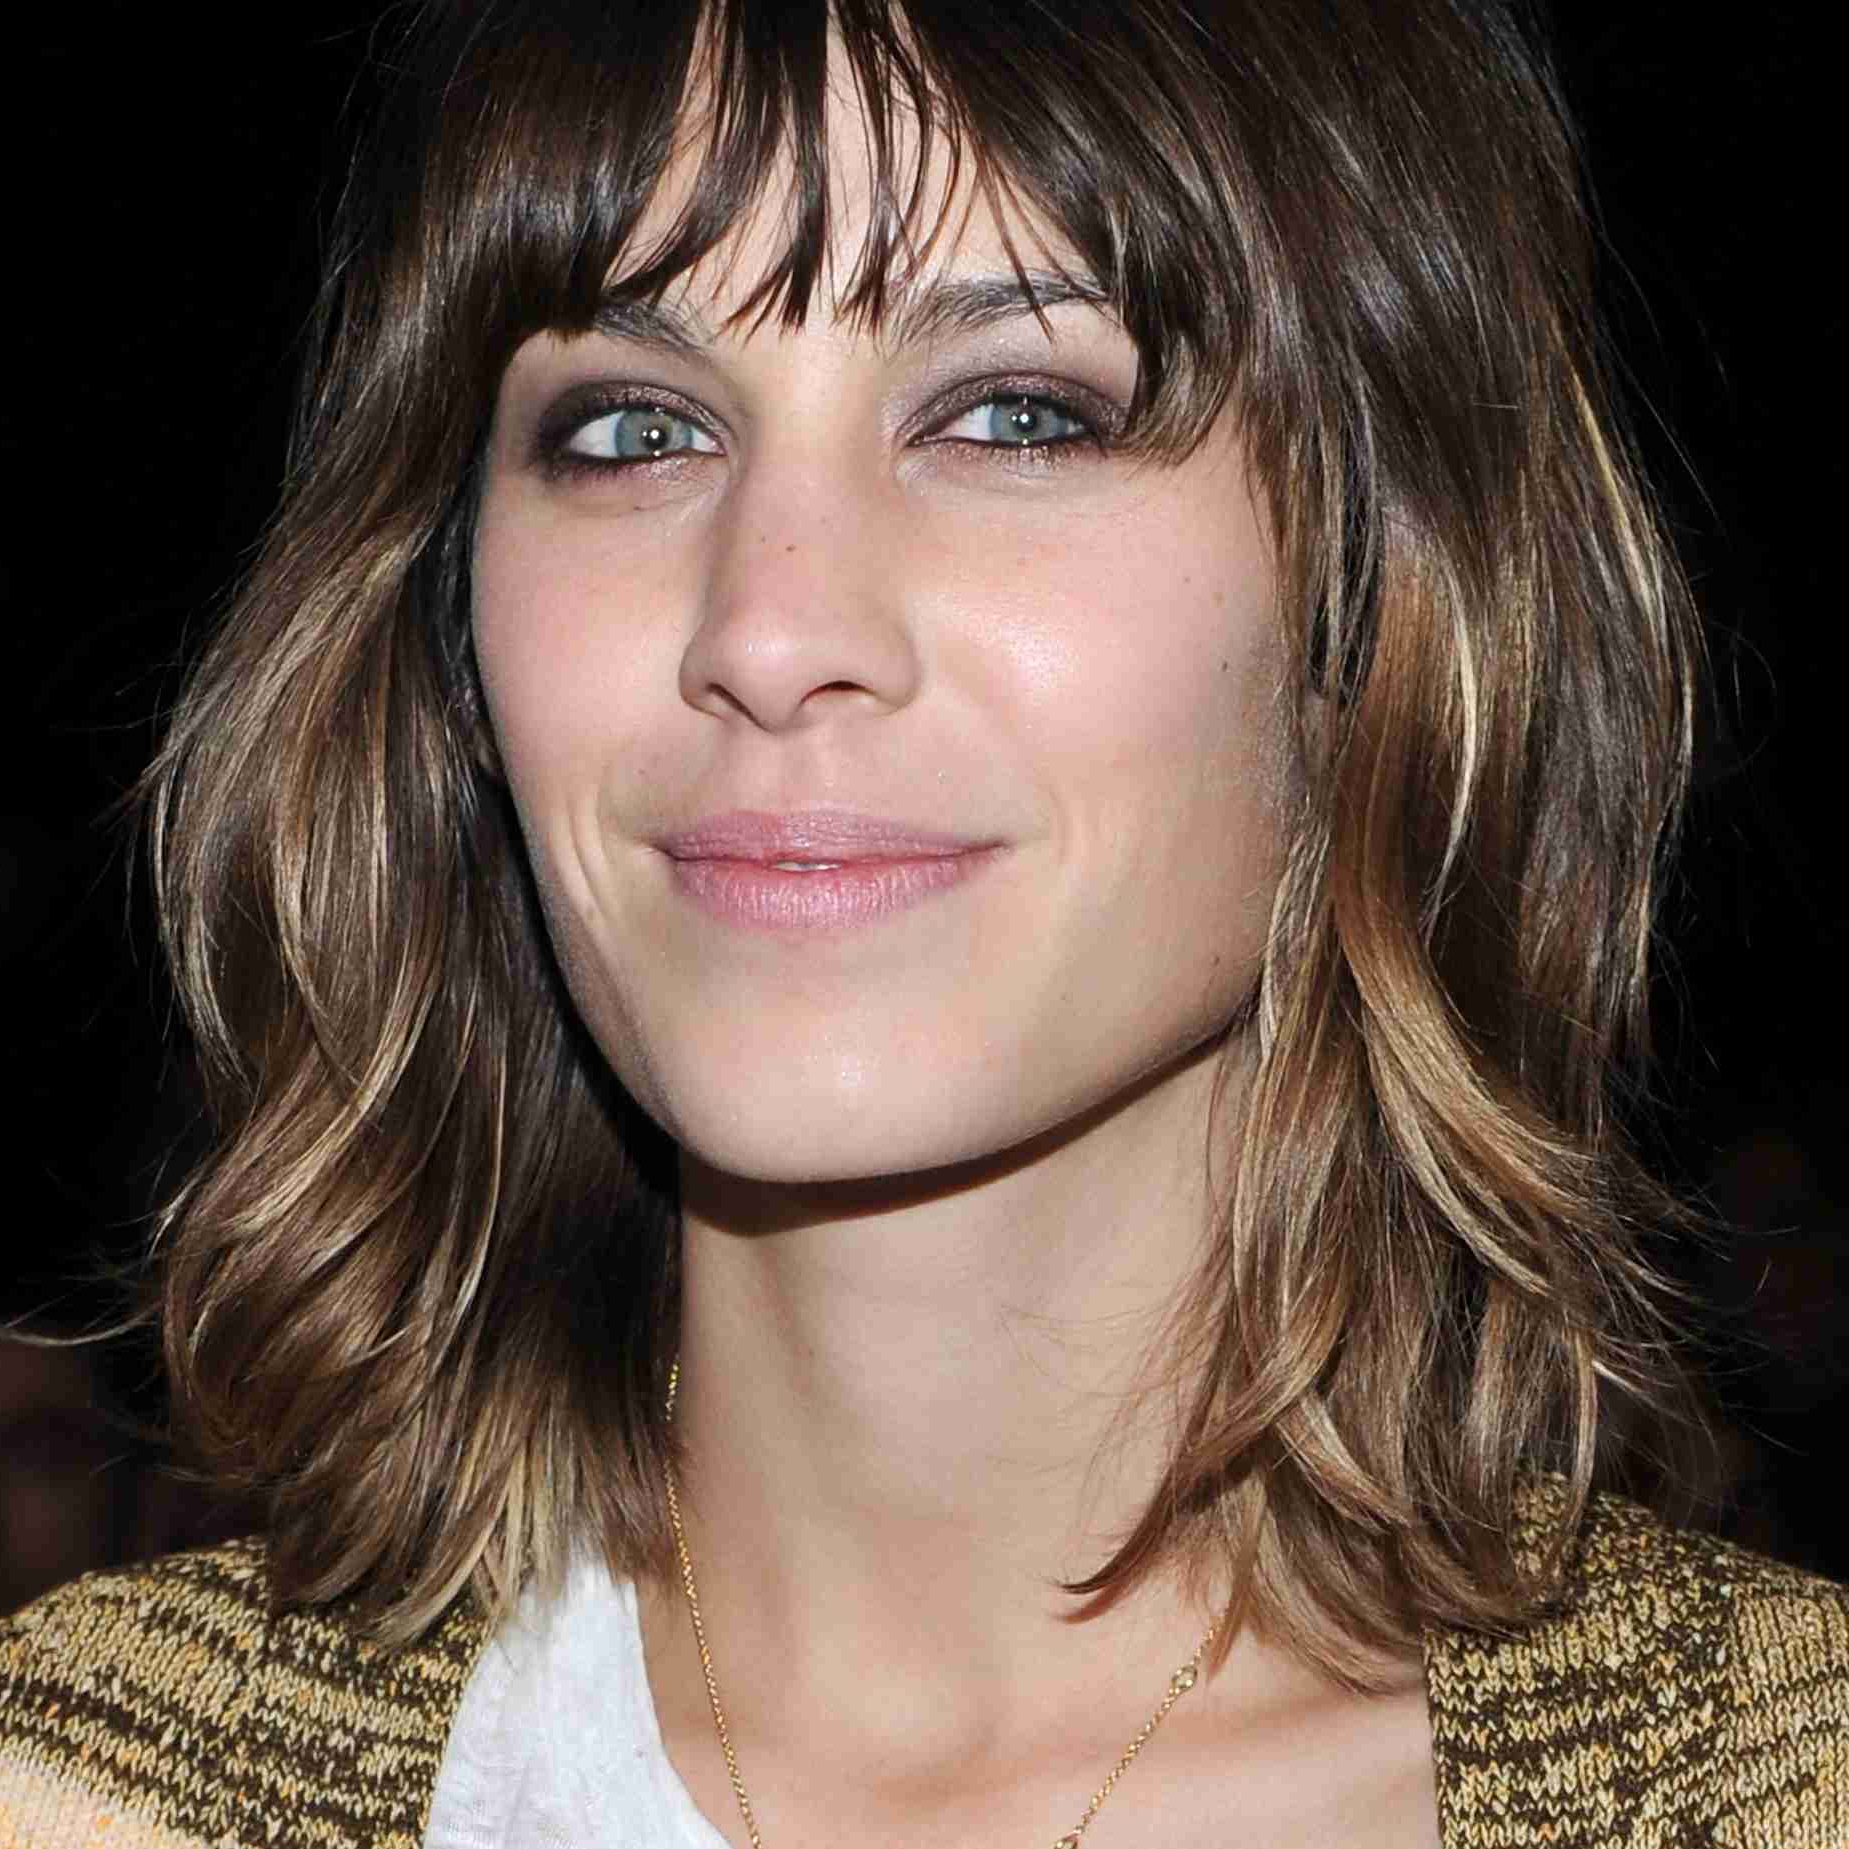 Can't Miss Shag Haircuts, From Short To Long Inside Shaggy Haircuts With Bangs And Longer Layers (View 11 of 20)